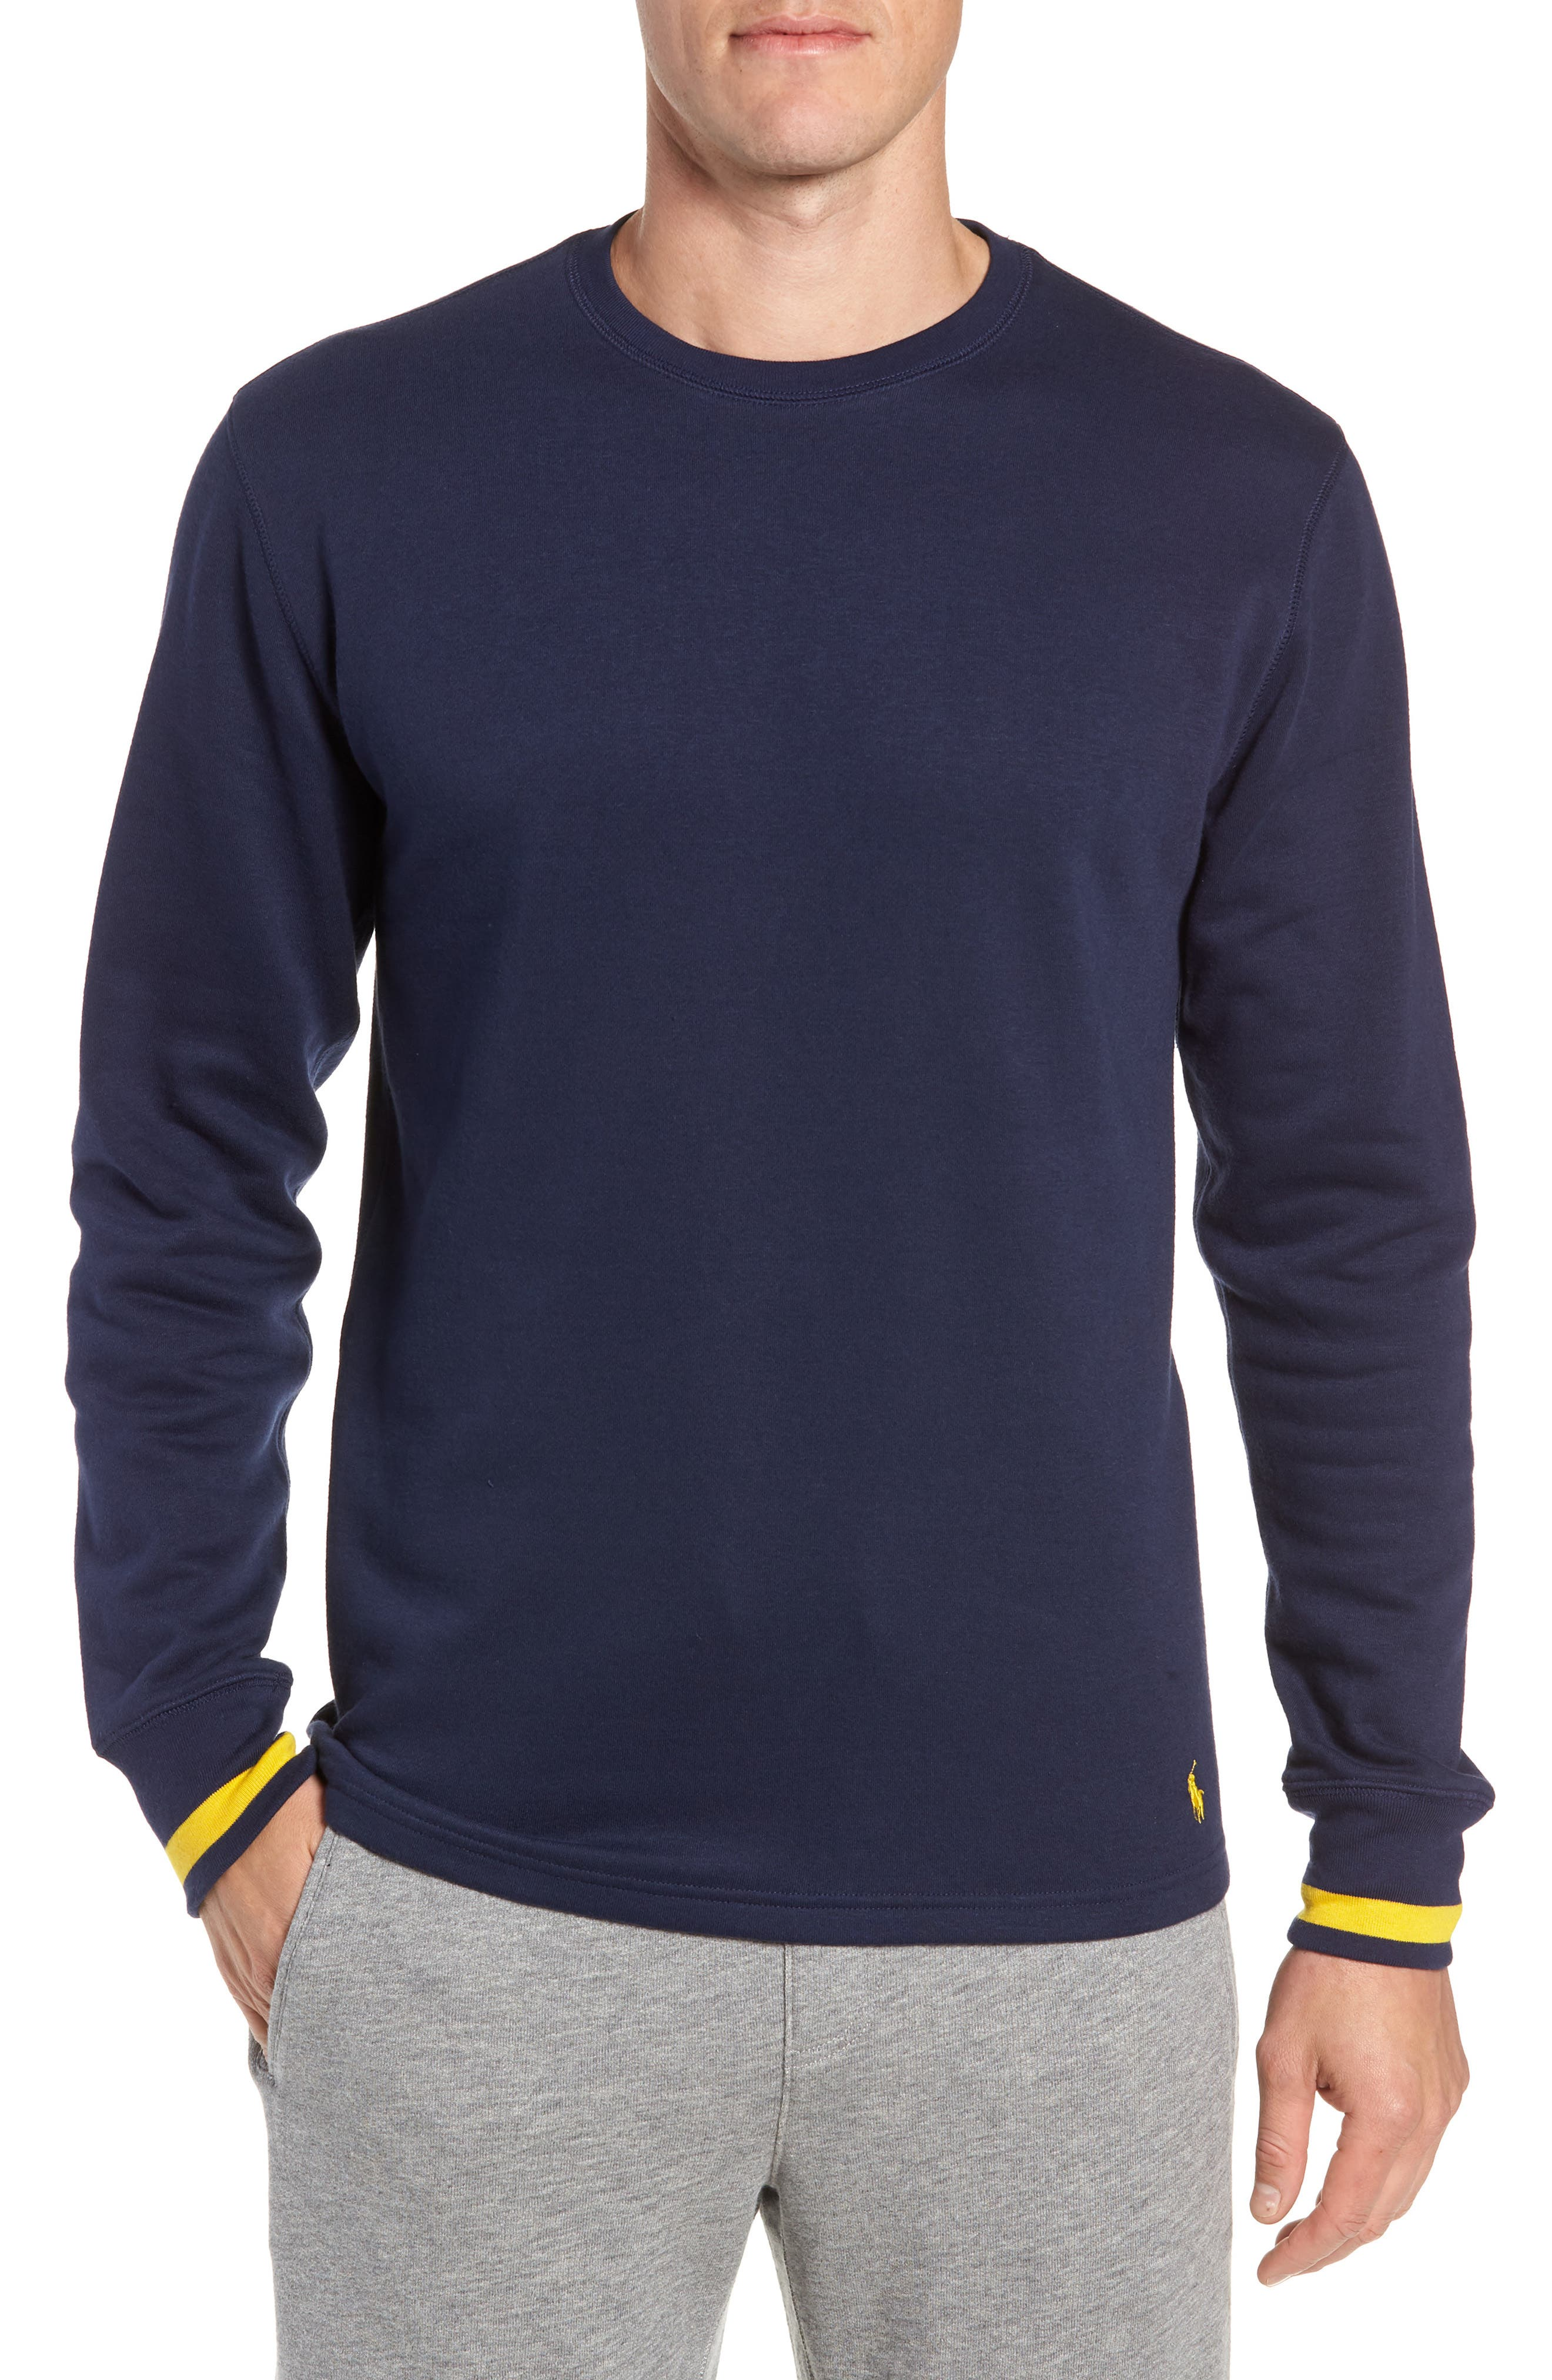 POLO RALPH LAUREN Brushed Jersey Cotton Blend Crewneck Sweatshirt, Main, color, CRUISE NAVY